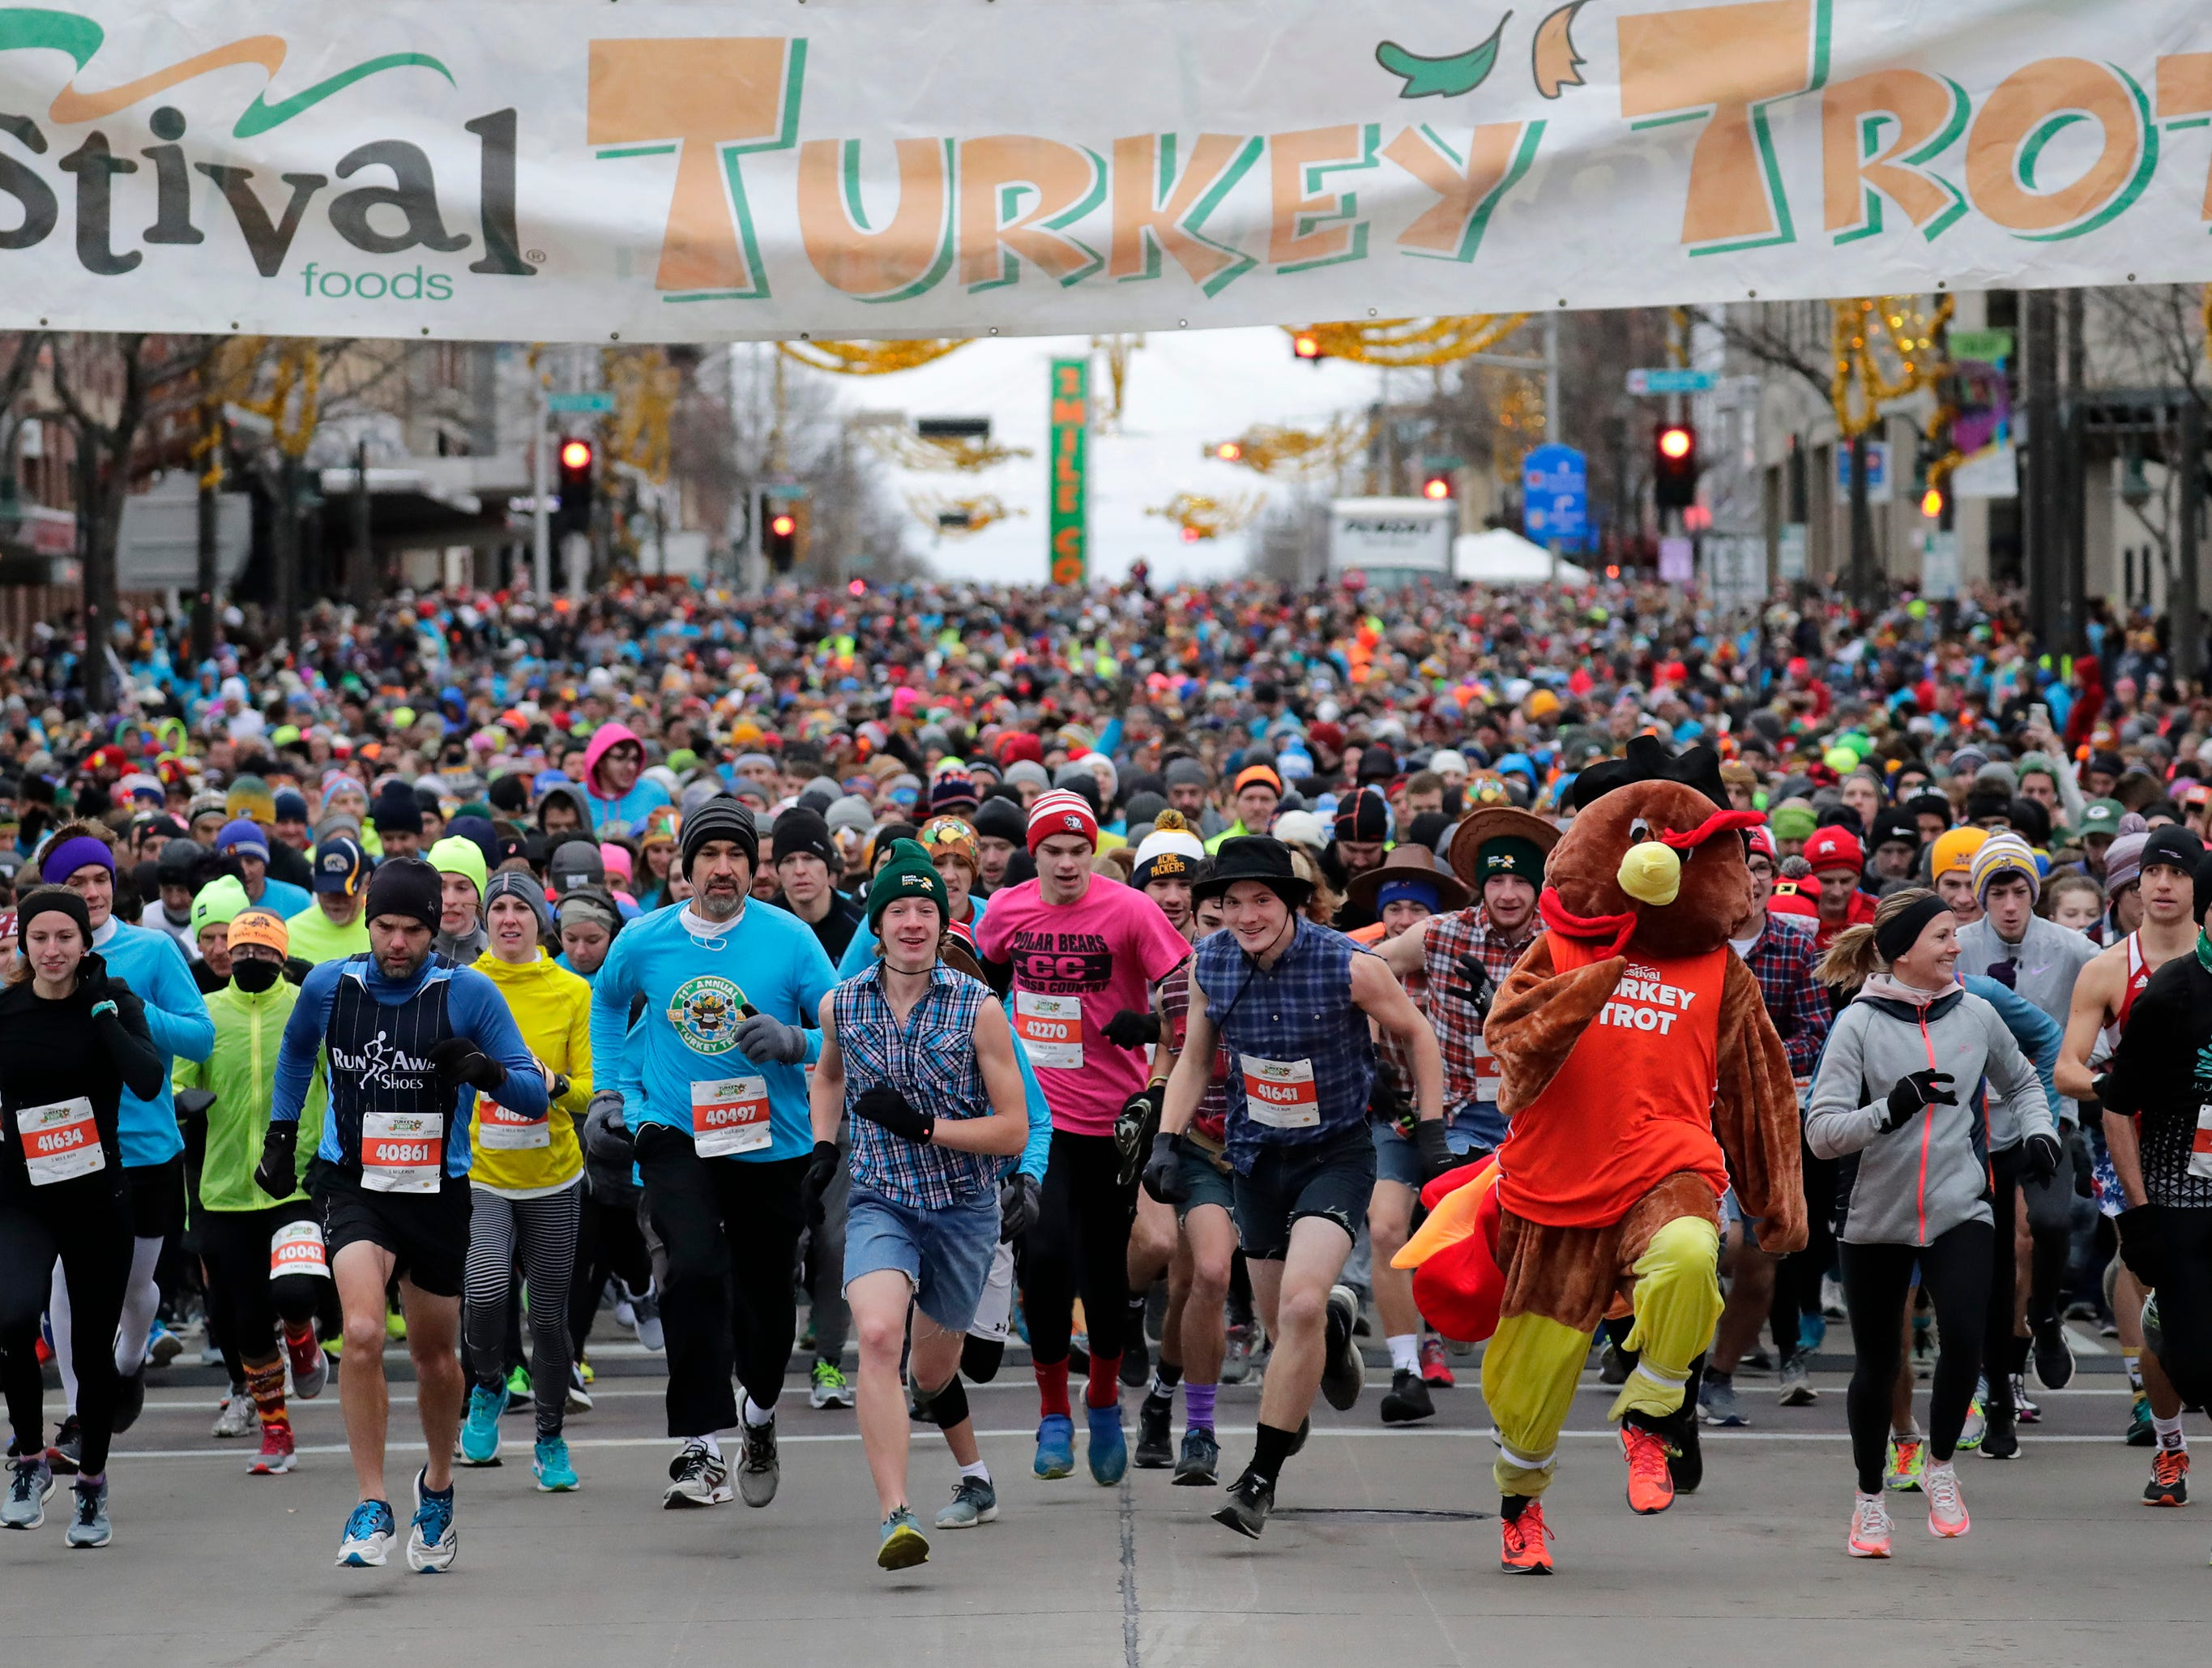 Participants take off from the starting line of the 11th Annual Festival Foods Turkey Trot Thursday, November 22, 2018, in Appleton, Wis. 